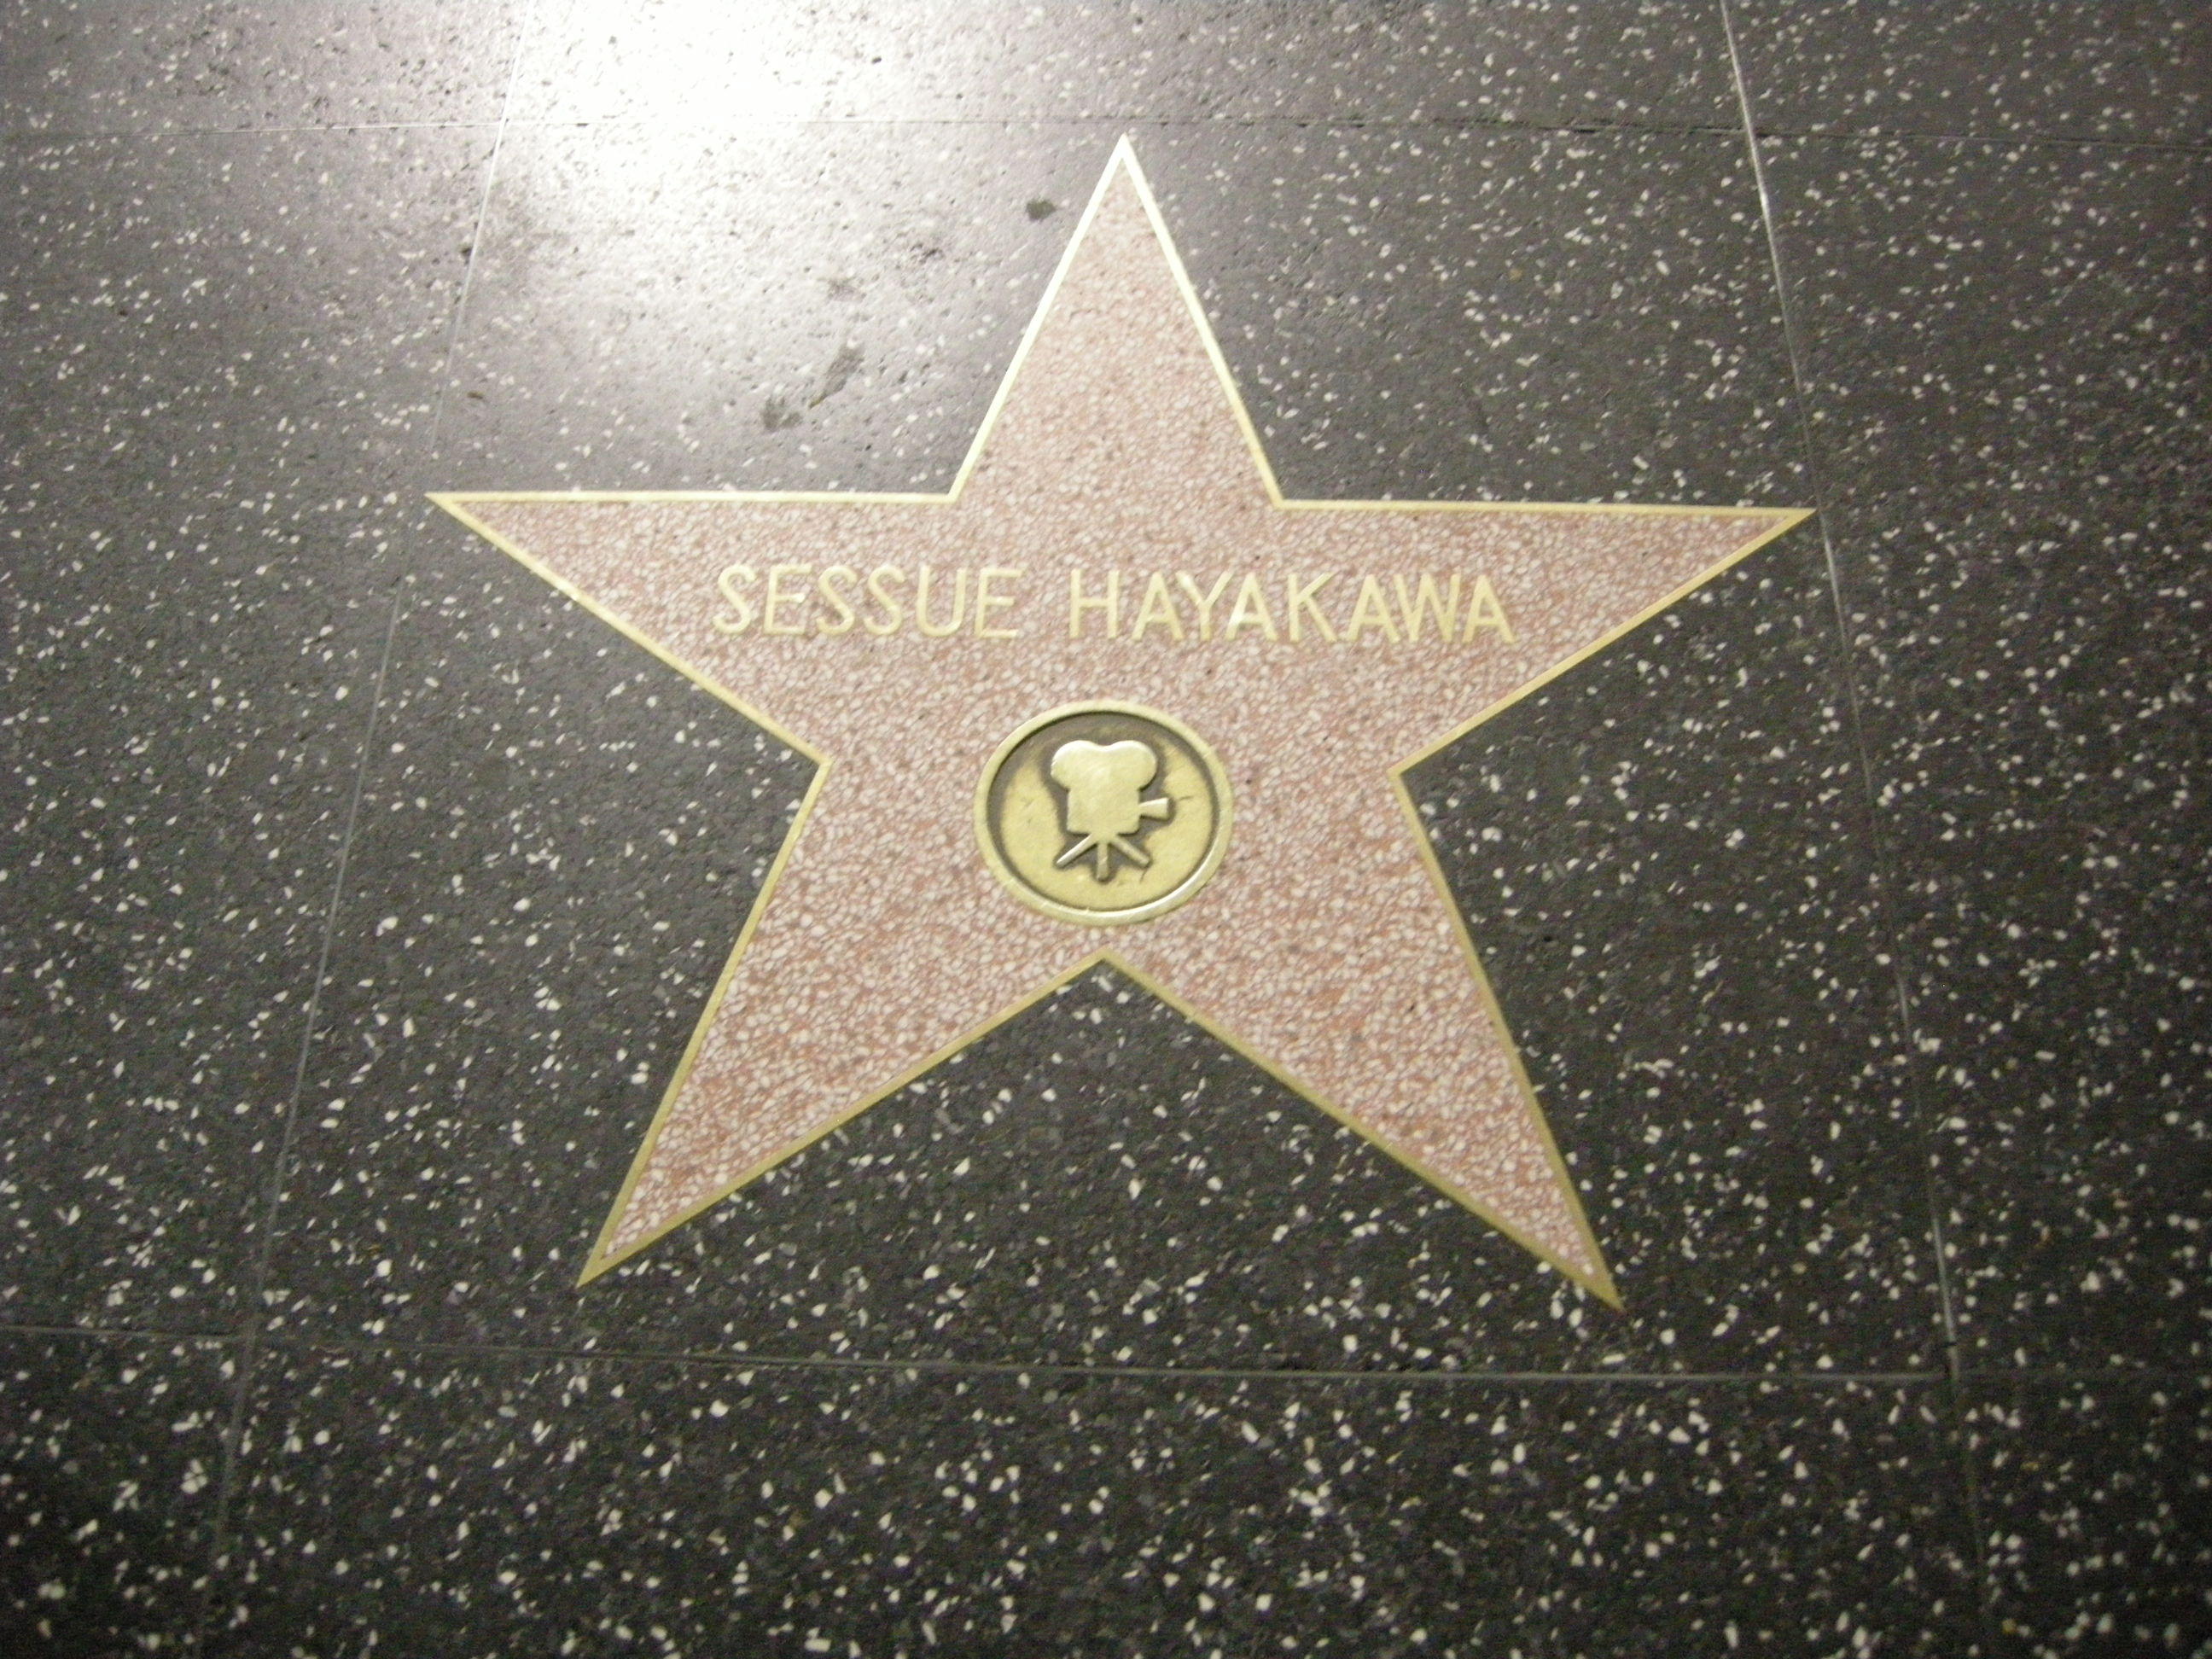 Walk_of_fame,_sessue_hayakawa.JPG